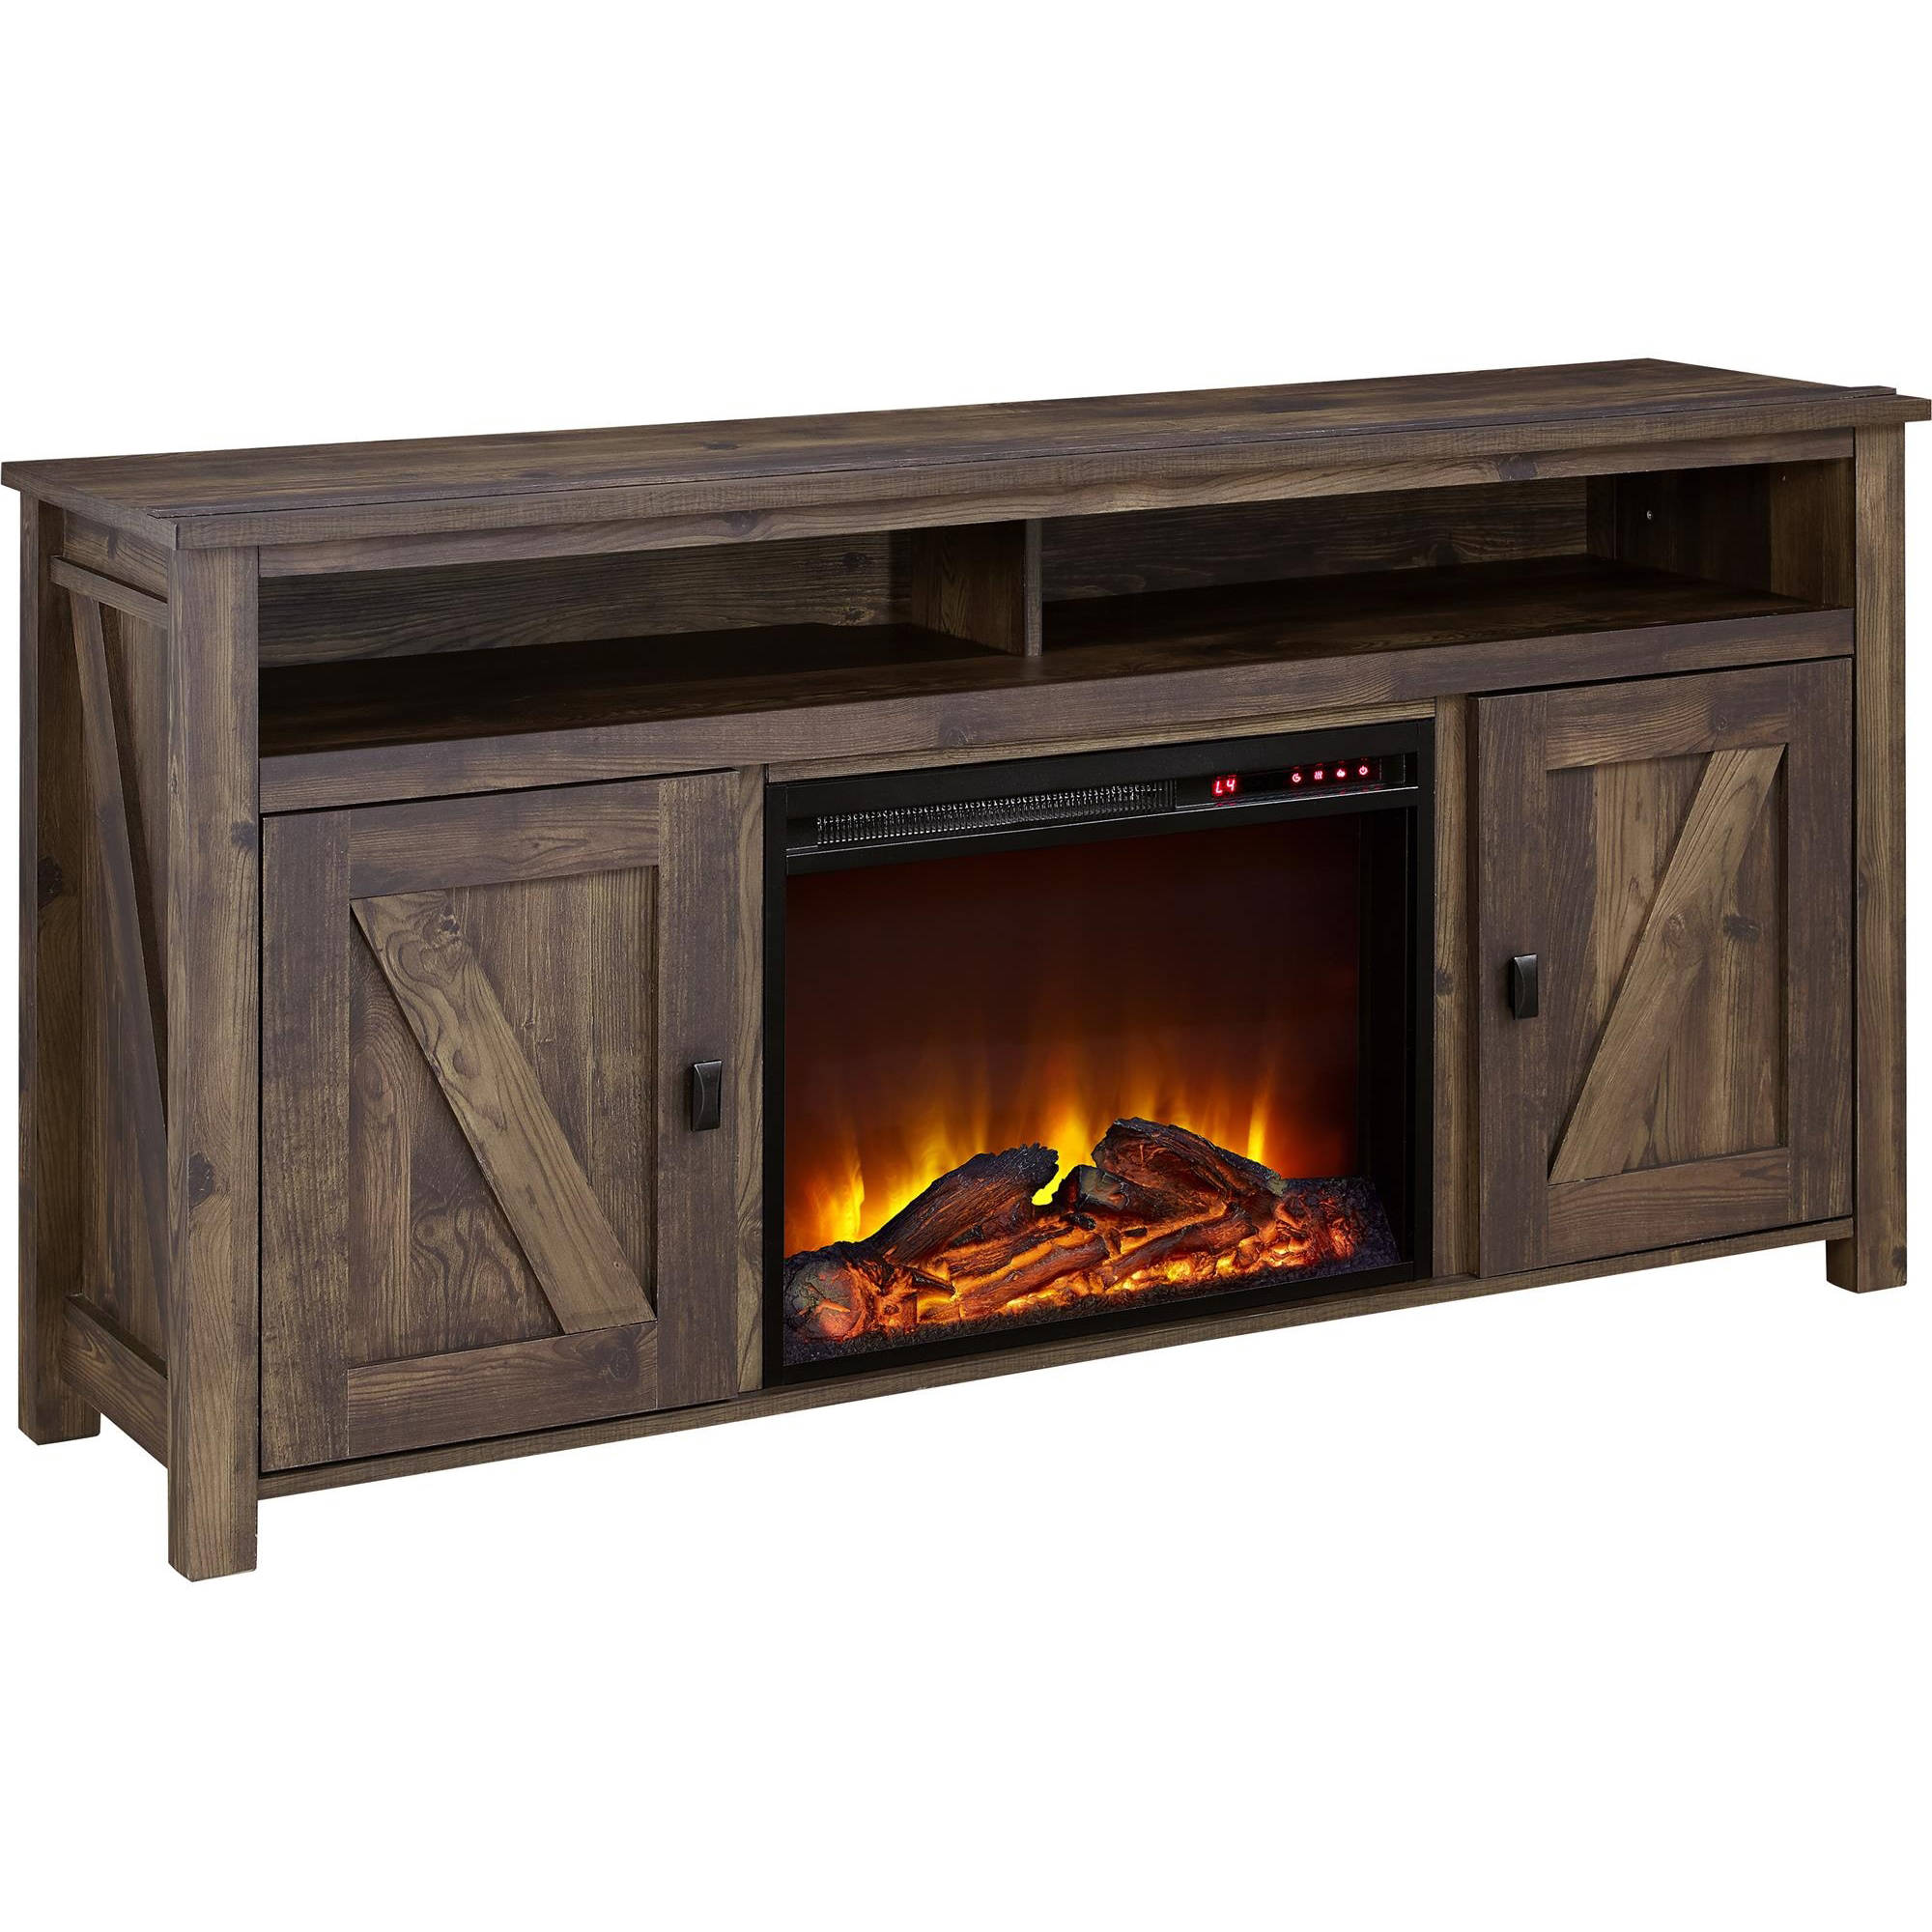 Electric Fireplace.com Ameriwood Home Farmington Electric Fireplace Tv Console For Tvs